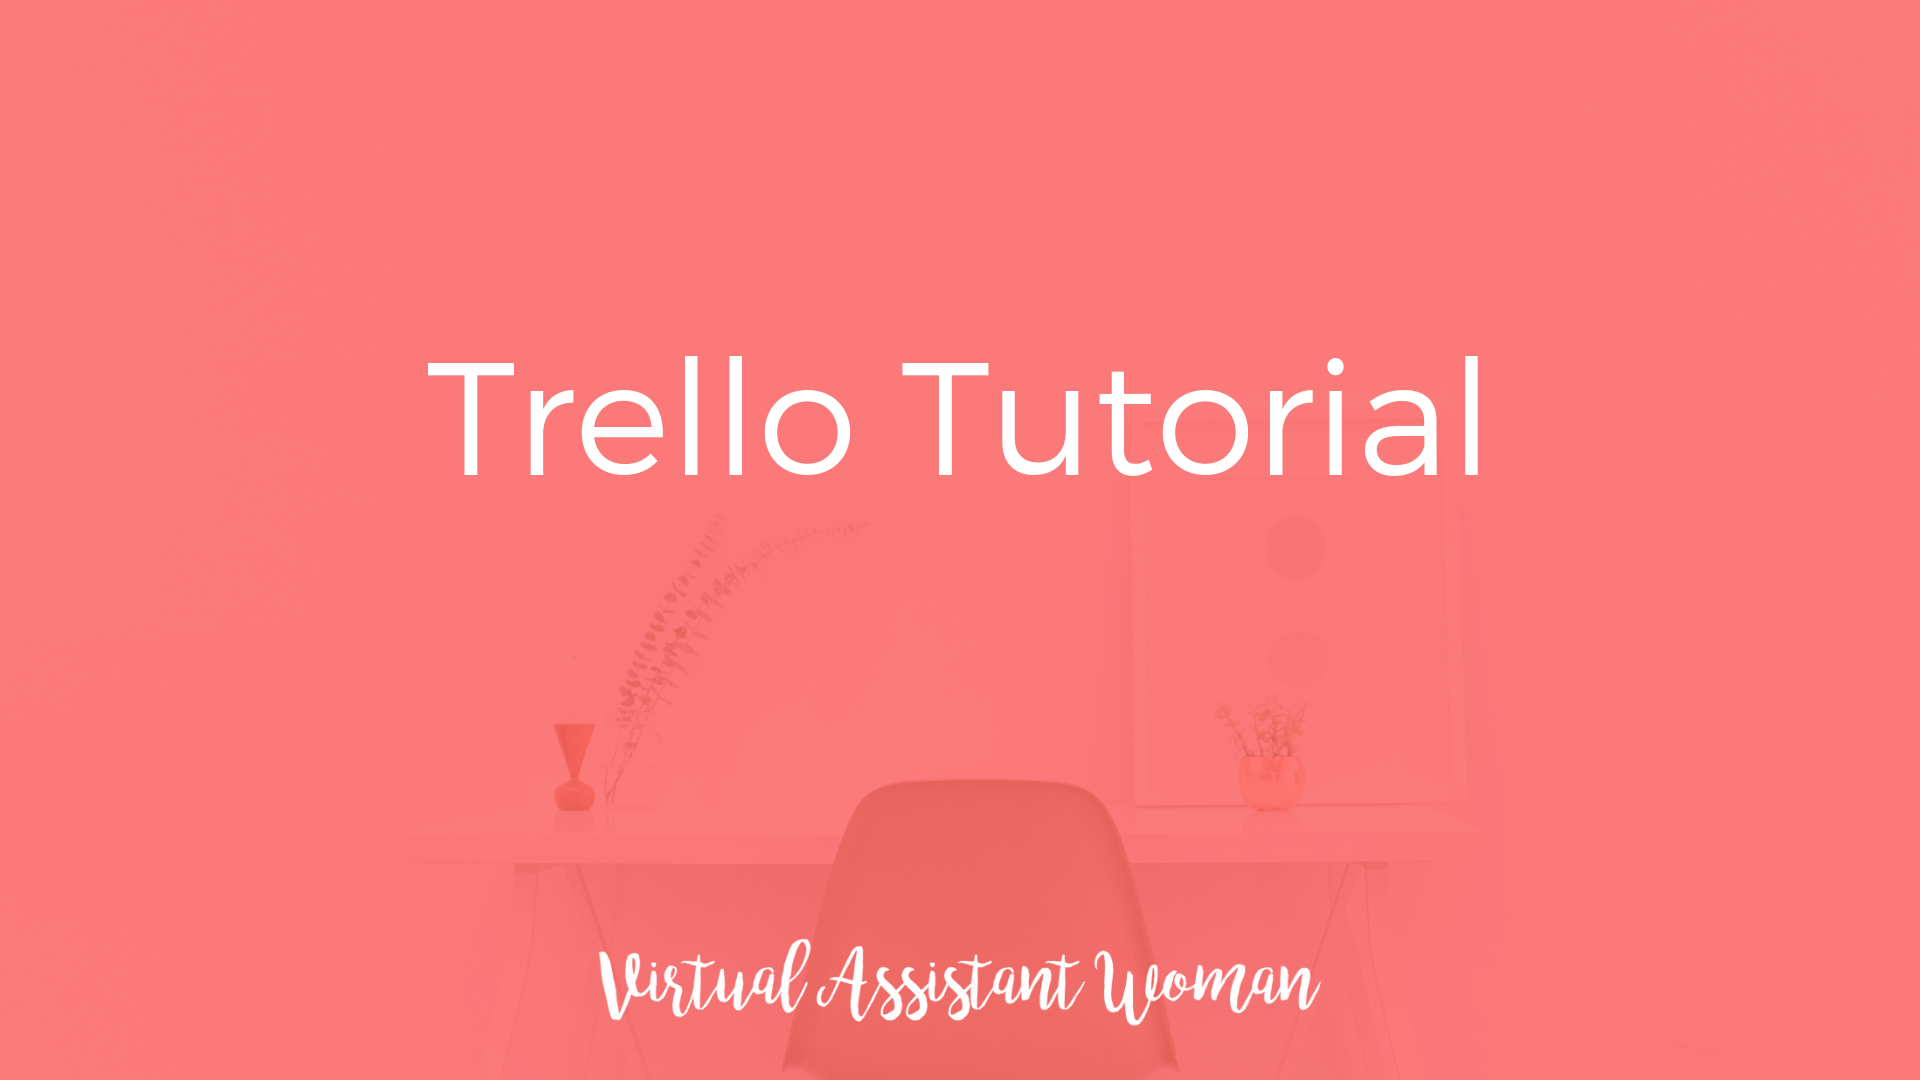 virtuelle assistenz onlinekurs trello